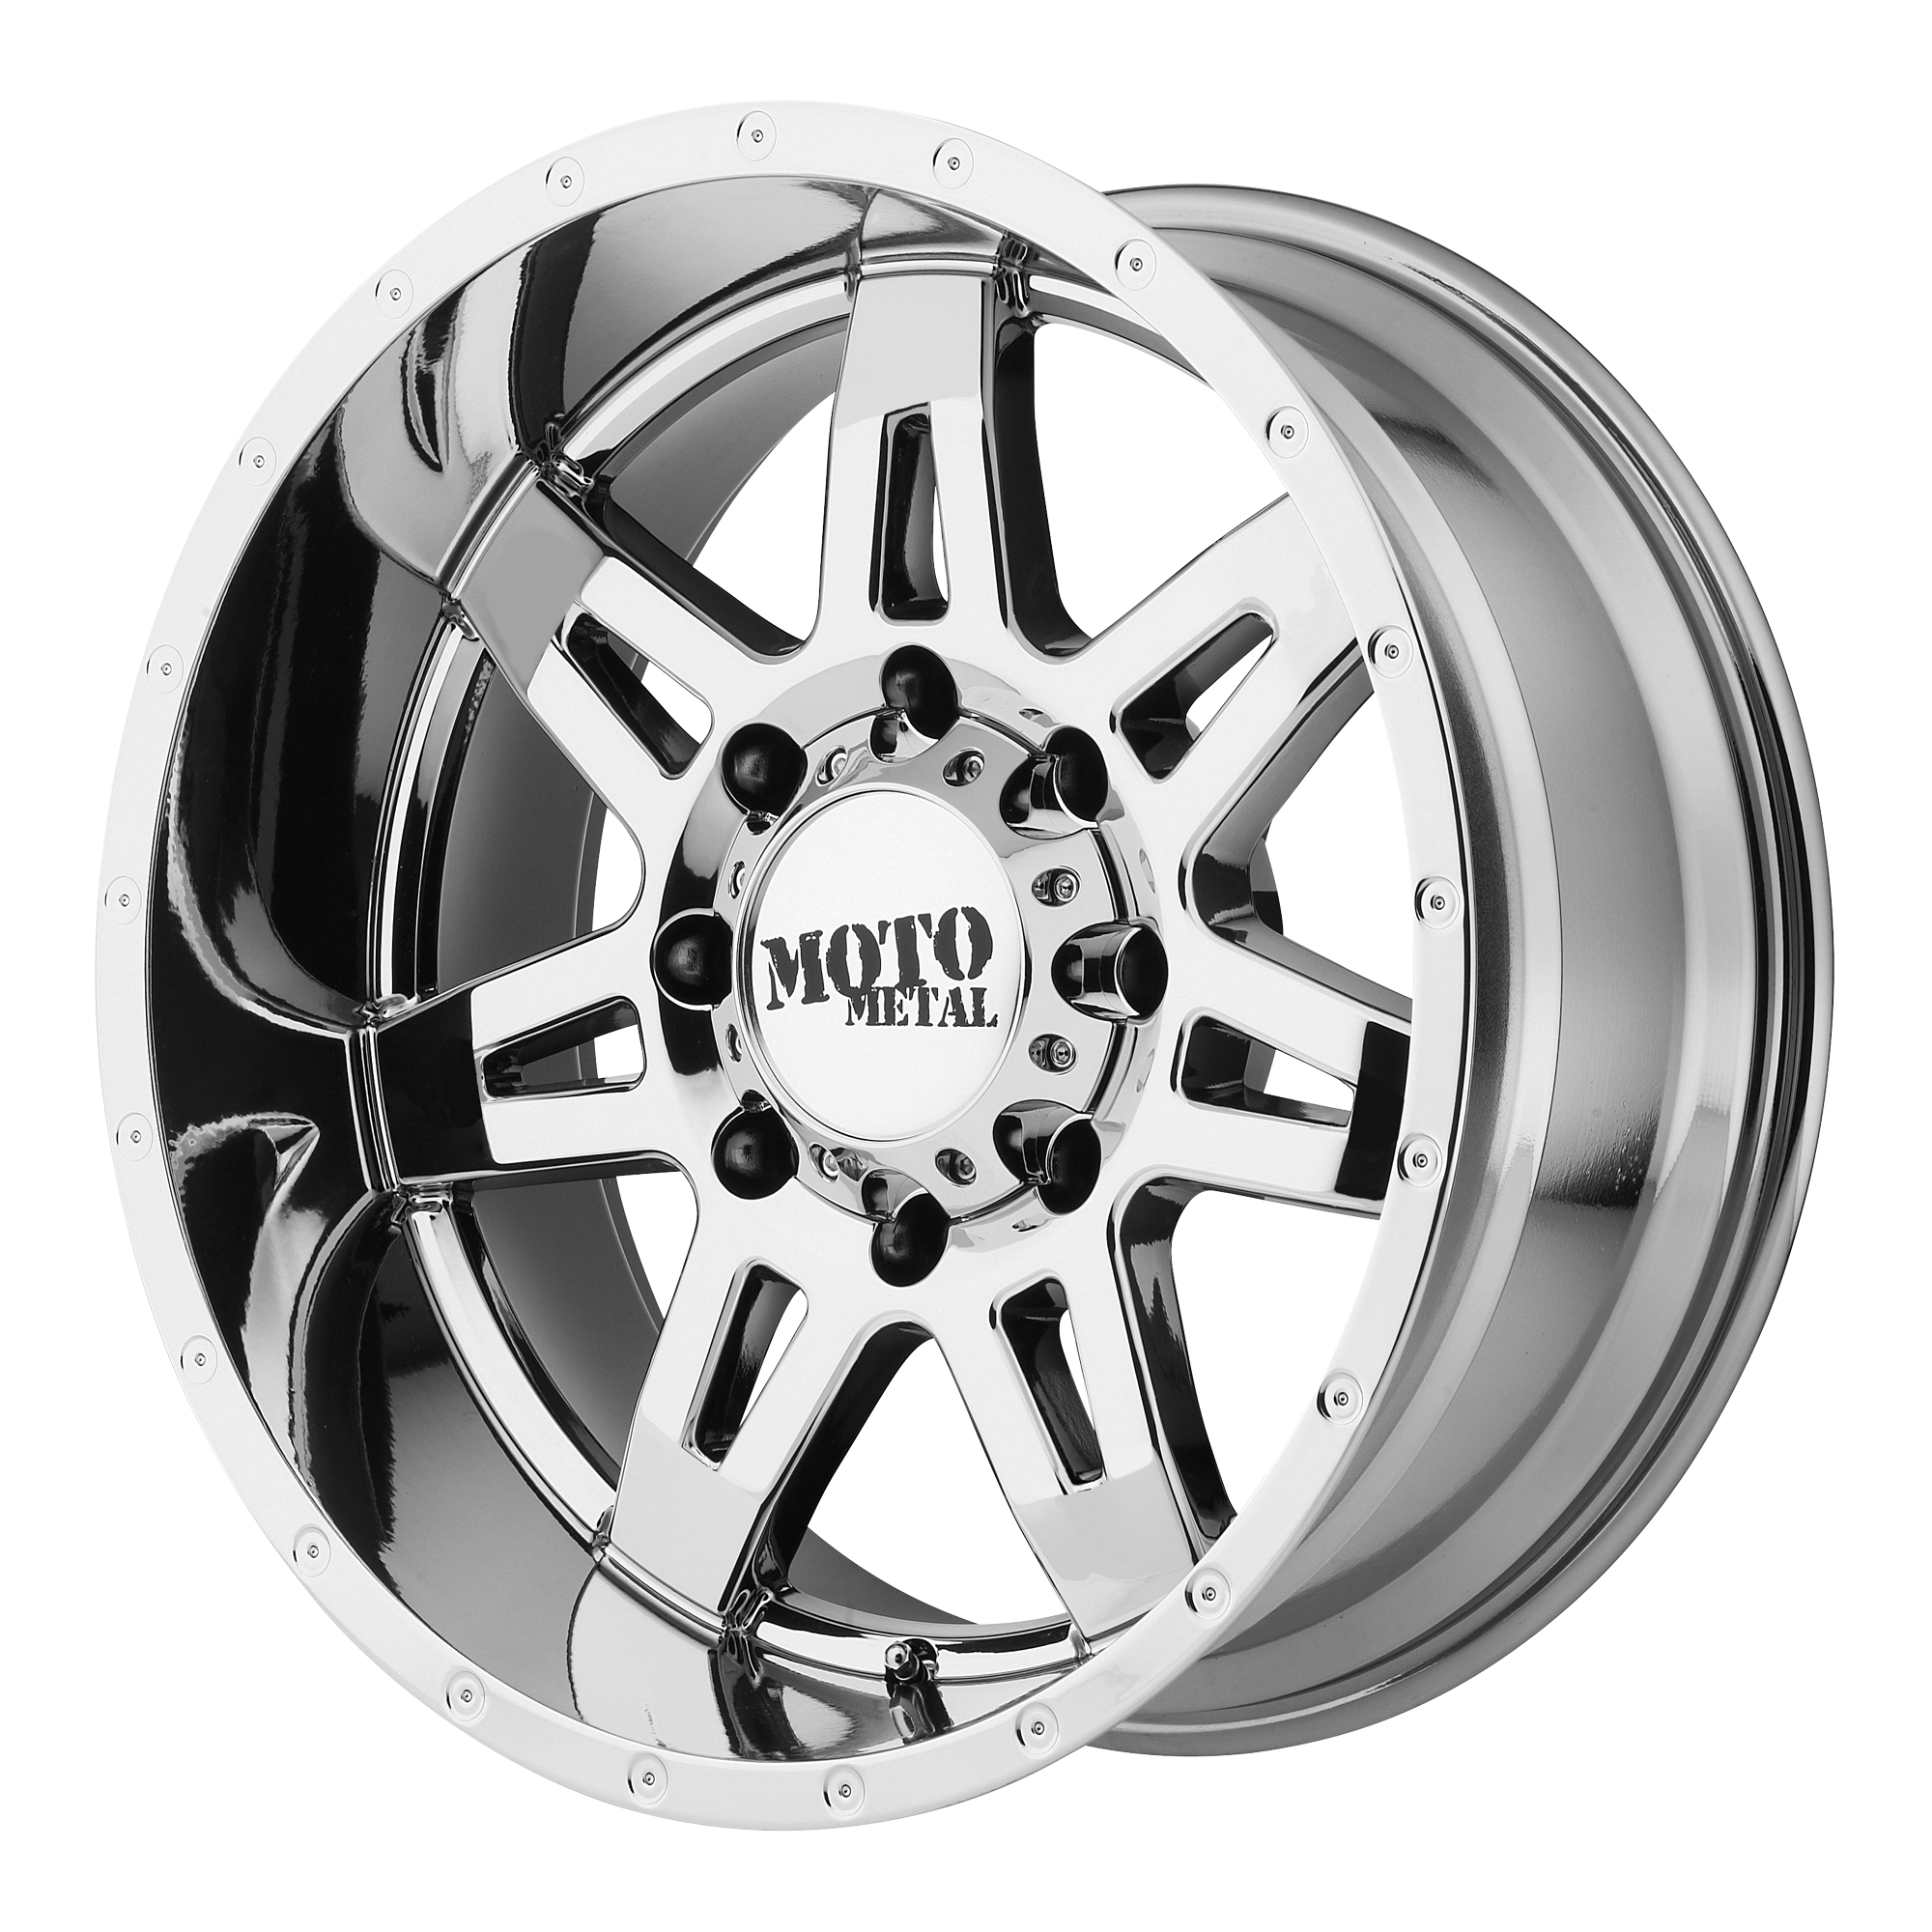 Moto Metal Offroad Wheels MO975 PVD